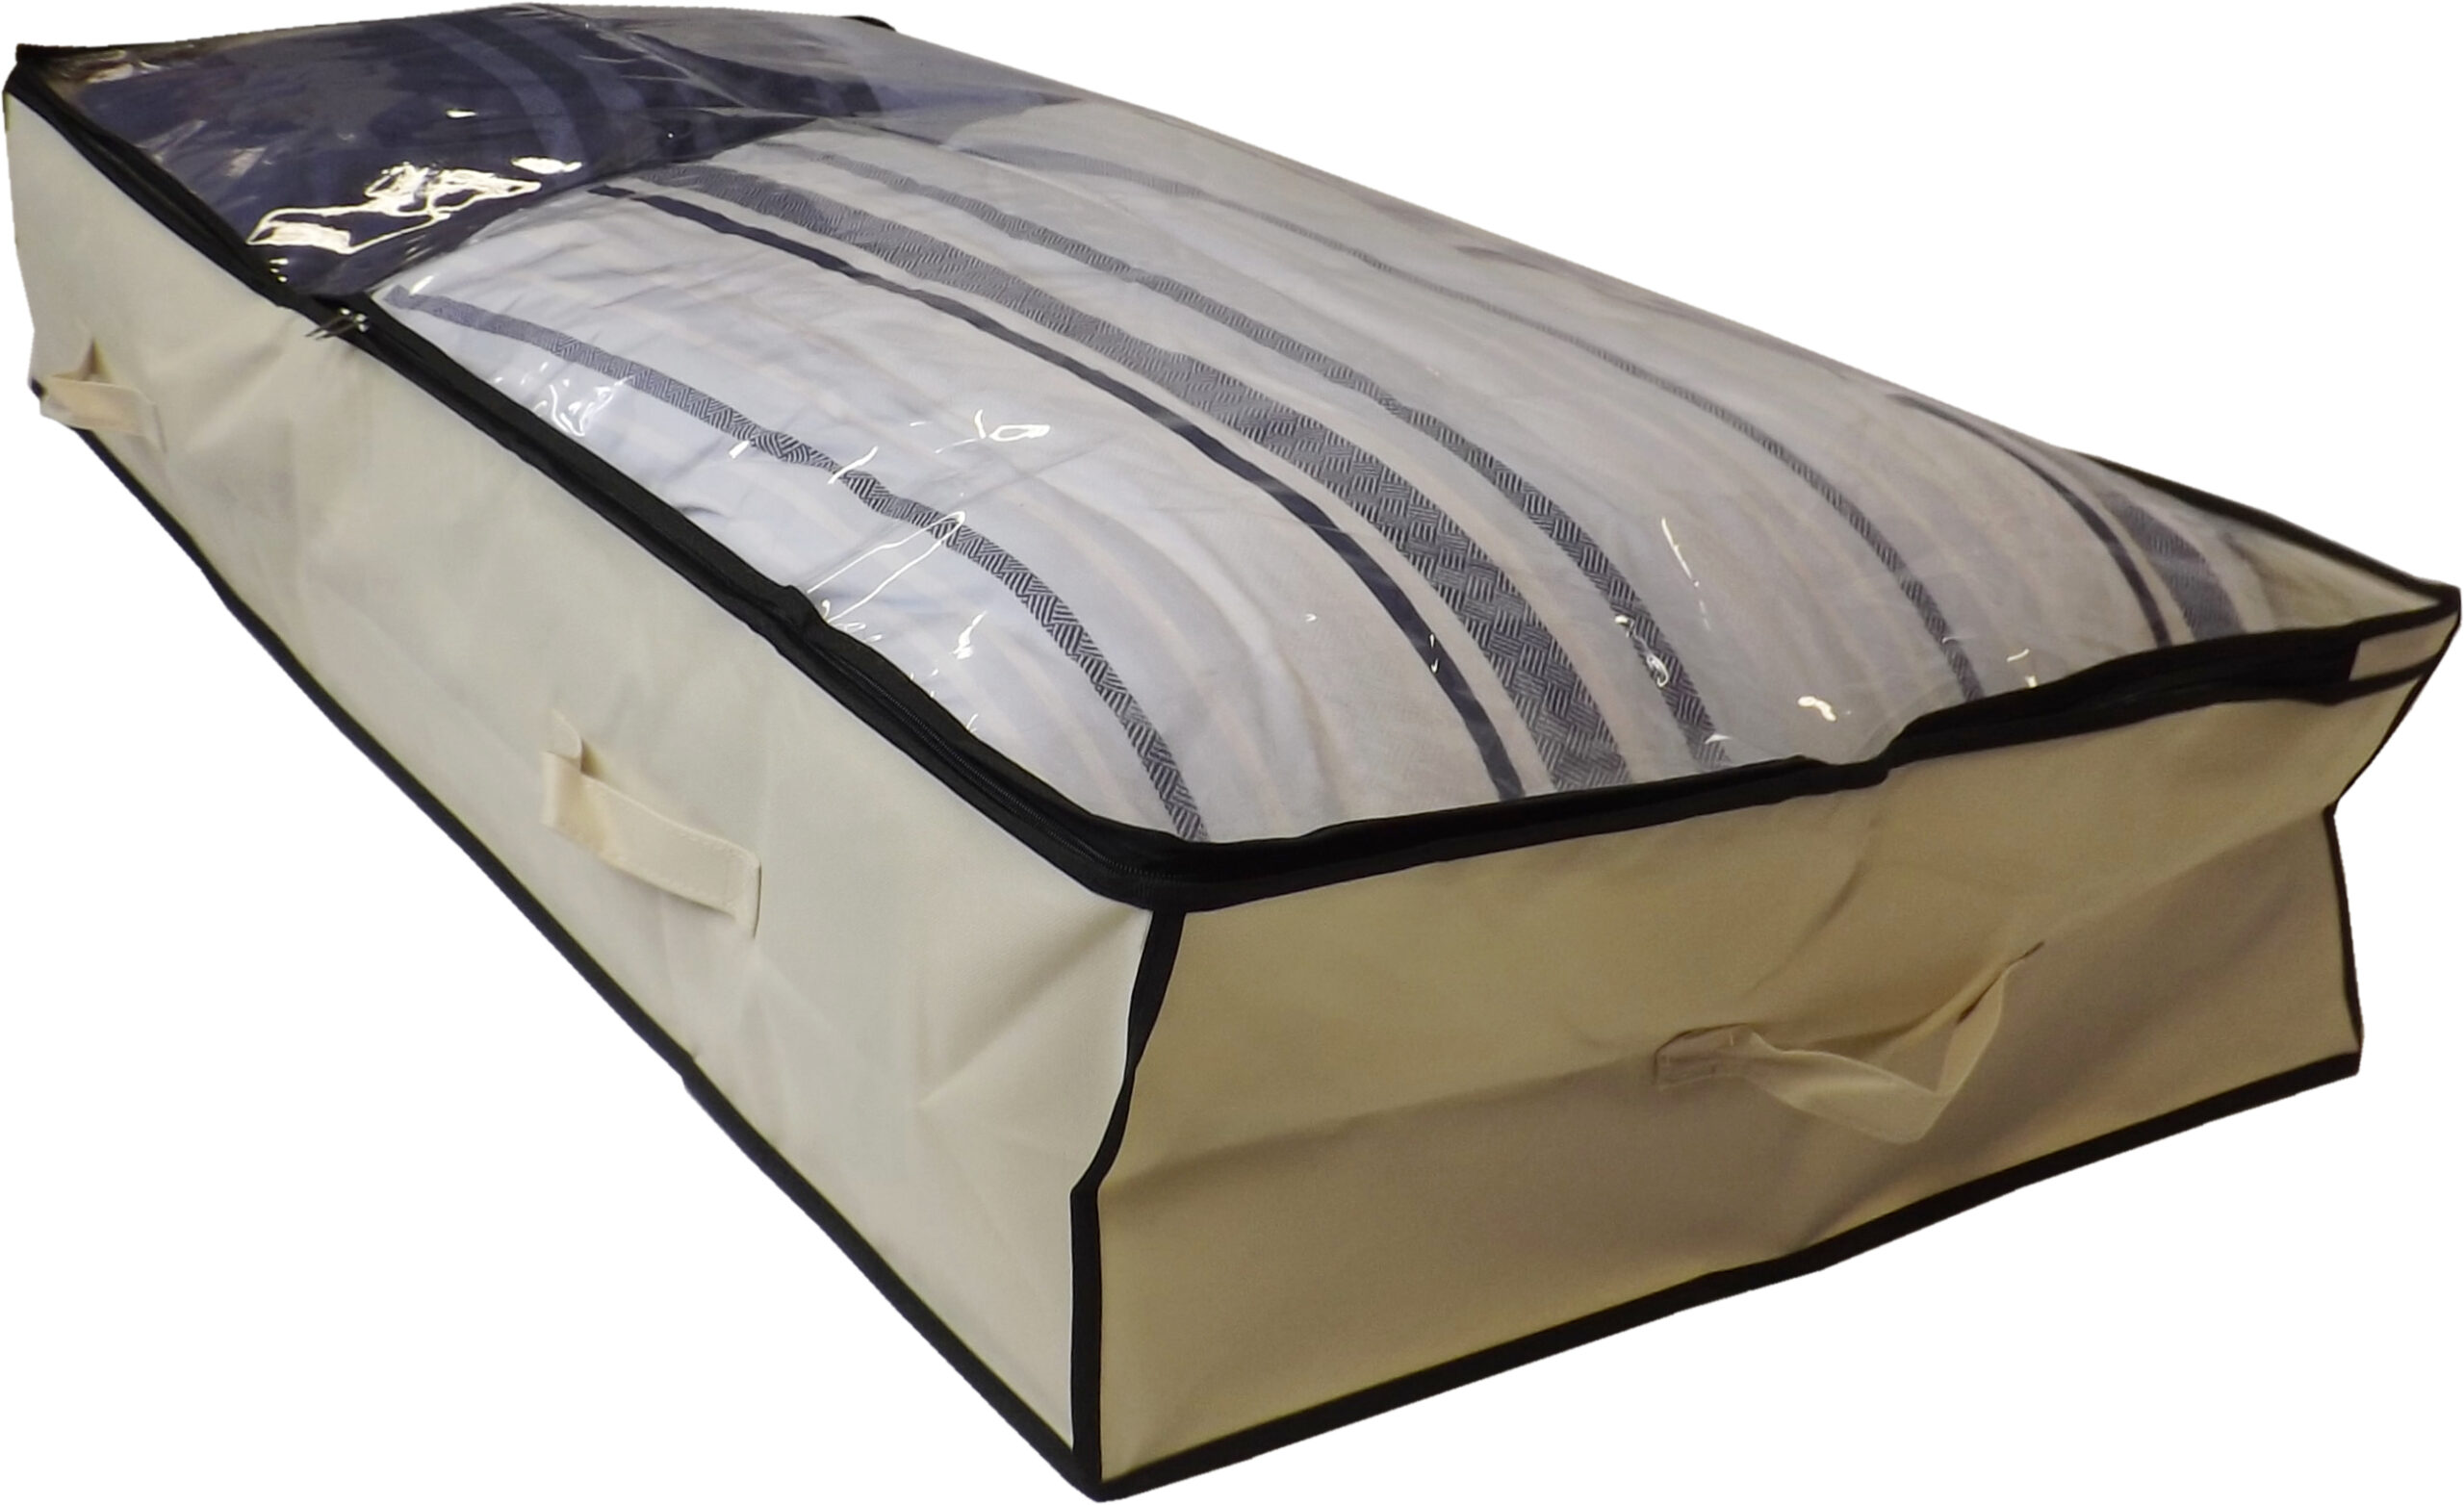 Extra Large Underbed Storage Bag With Clear Top, Heavy Duty, 150 Litre Capacity, 125x60x20cm, Beige